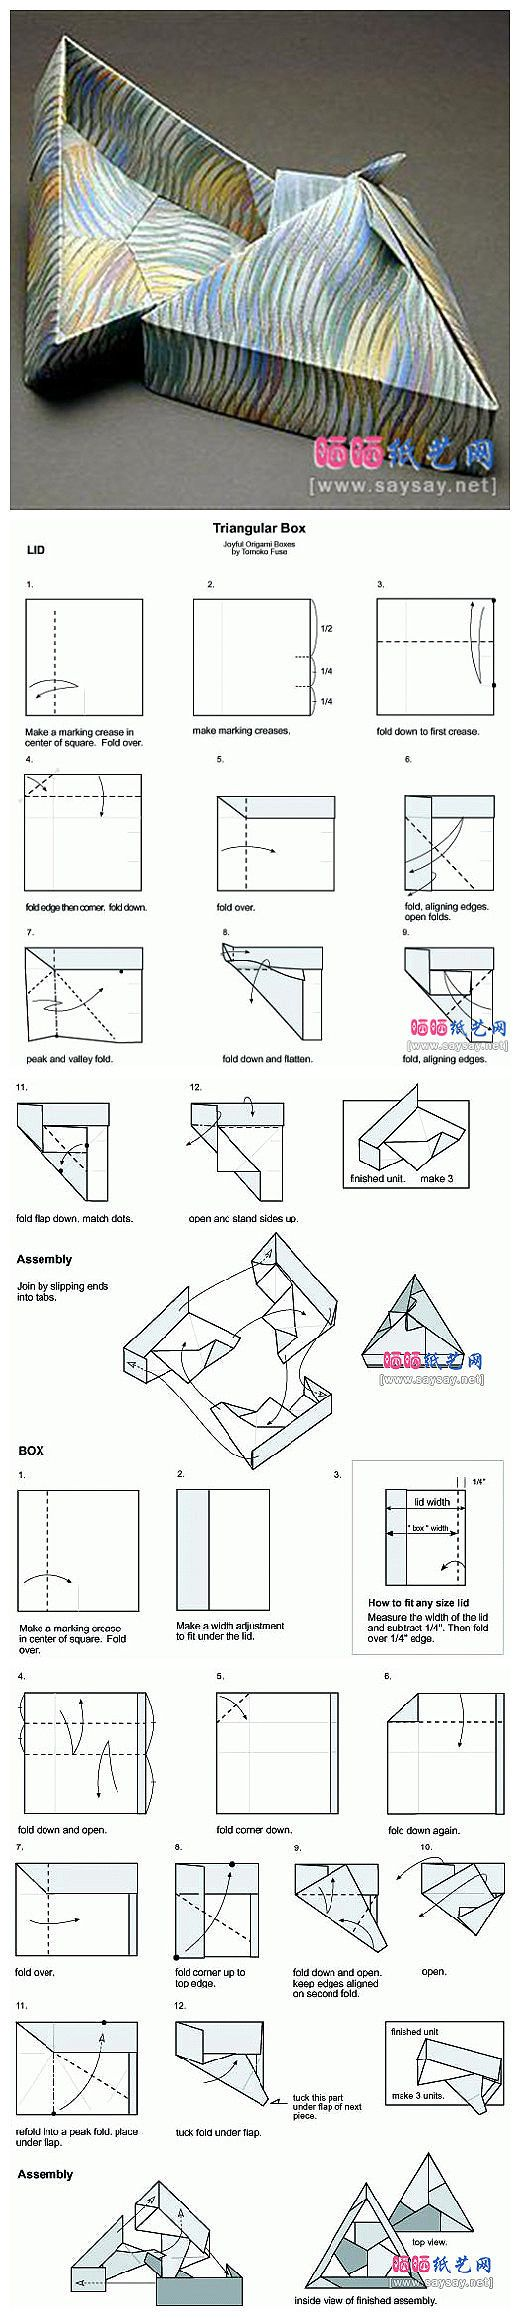 medium resolution of triangular origami box by tomoko fuse diagrams